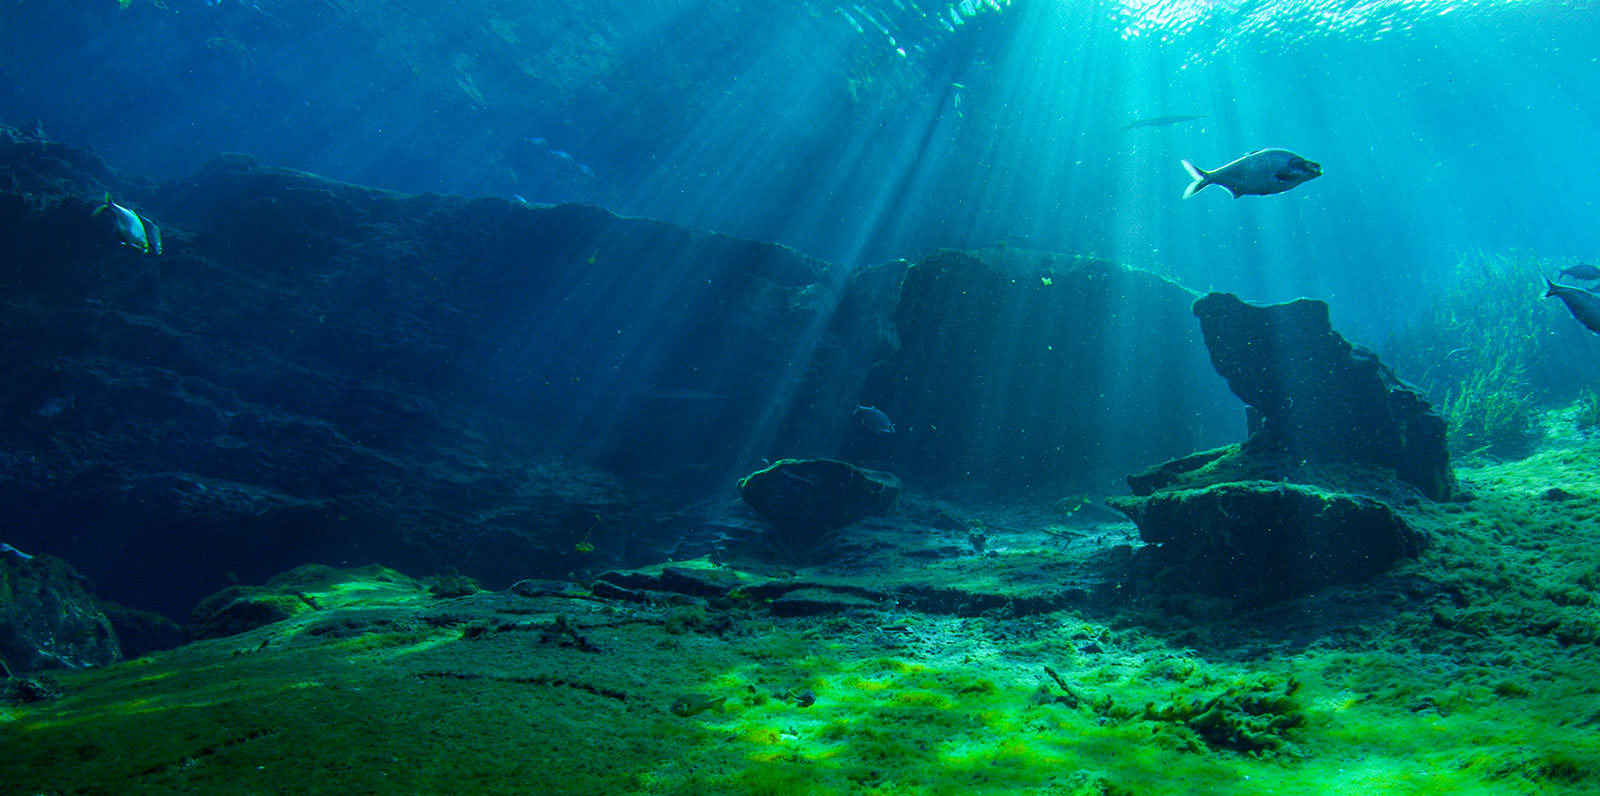 Florida Buys Land To Protect Silver Springs And Ocklawaha